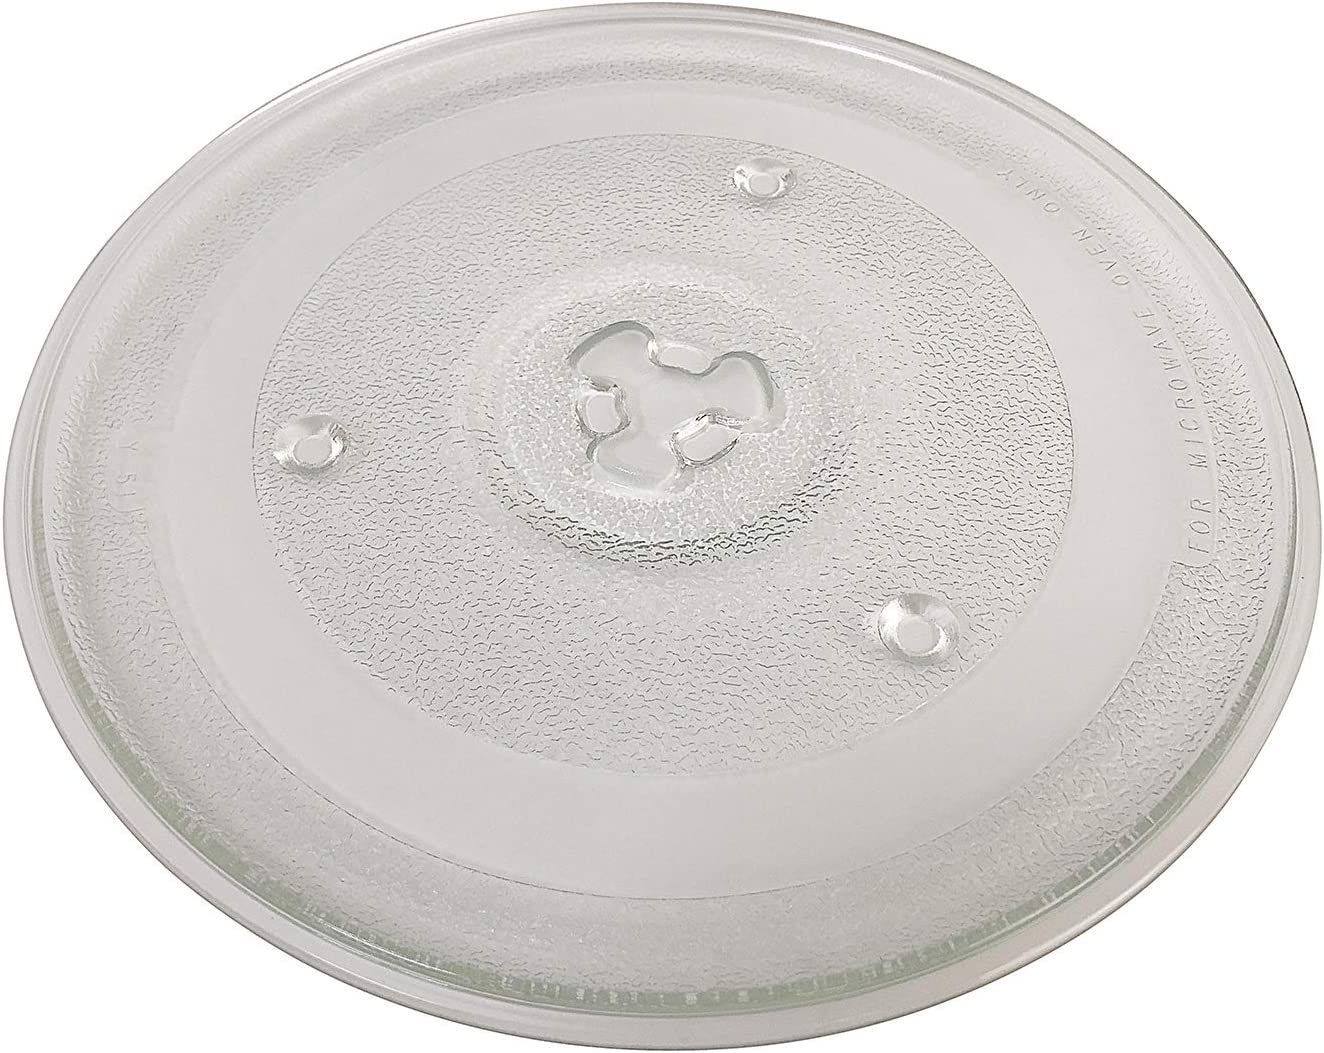 10 1/2 Inch Microwave Turntable Plate 252100500497 HB-P90D23 HBP90D23 HB-P90D23A HB-P90D23AL-DJ Replacement for Hamilton Beach Emerson Sunbeam Magic Chef